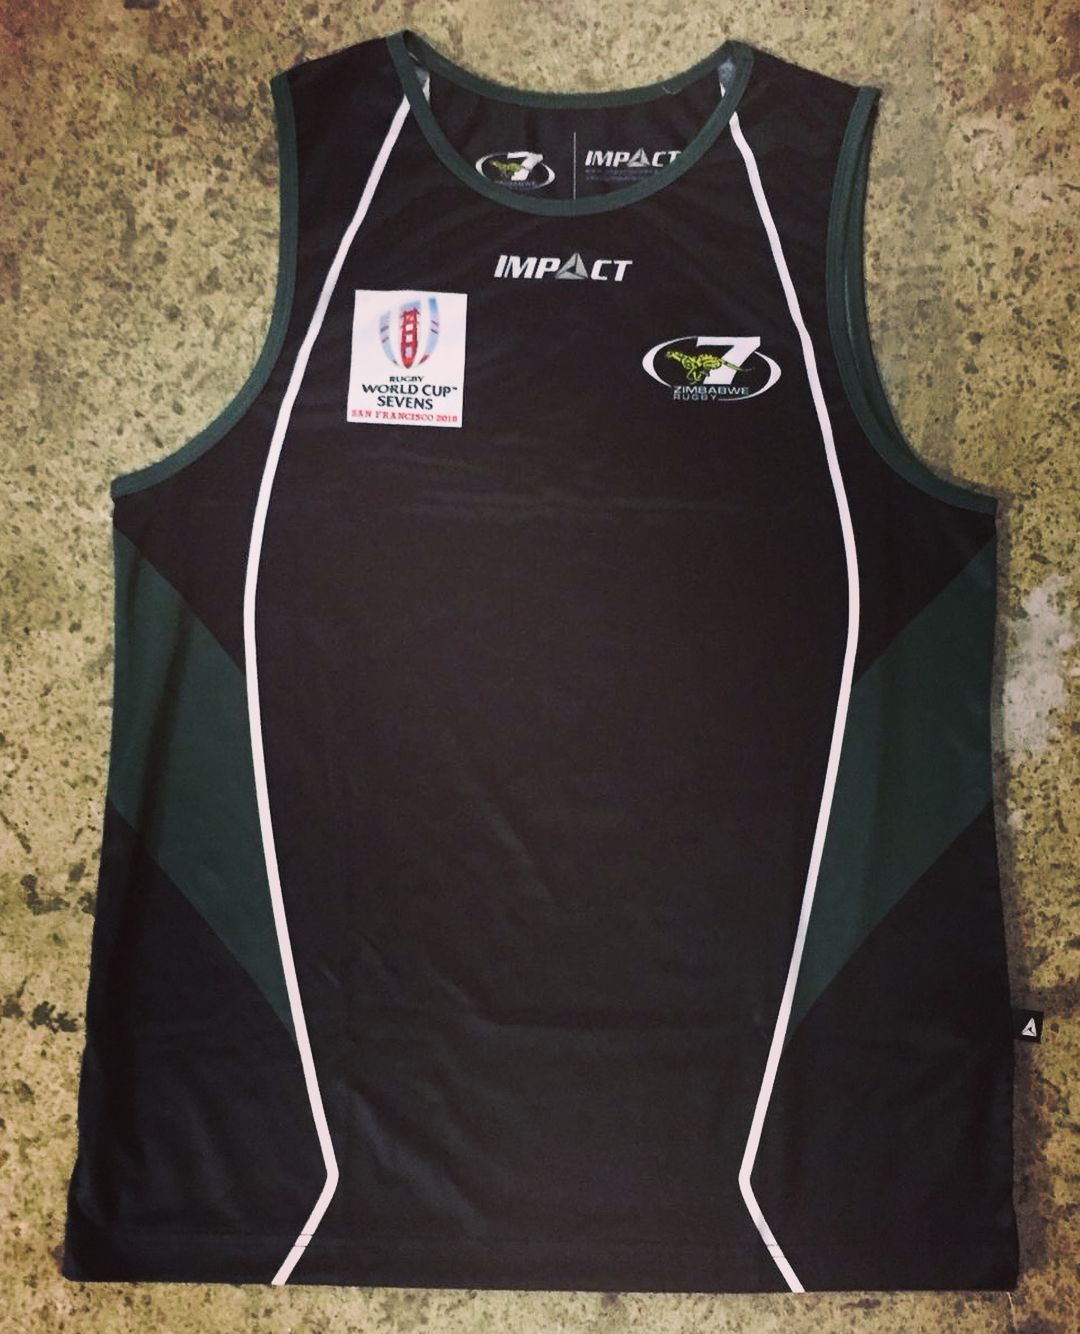 Official Zimbabwe Cheetahs Rugby 7s Training Vests For The Upcoming Rugby World Cup 7s In Sanfrancisco City Support In 2020 Rugby World Cup Rugby 7s World Cup